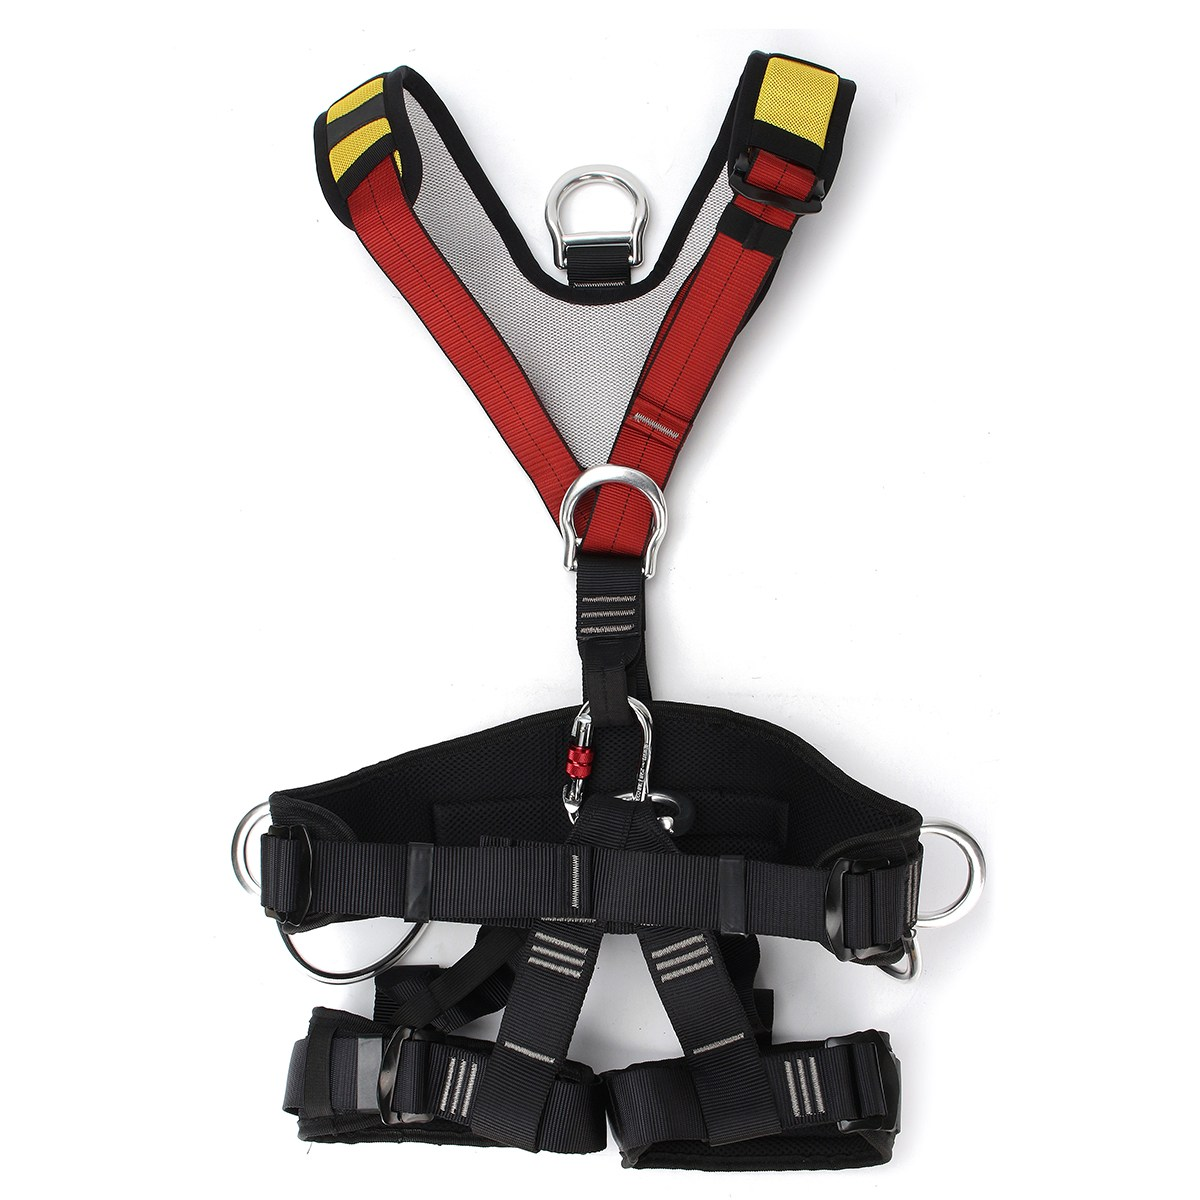 Professional Outdoor Rescue Rock Climbing Sitting Bust Belt Safety Seat Rappelling Harness Full Body Rescue Climbing Belt miller titan by honeywell ac qc xsbl aircore full body harness x small blue